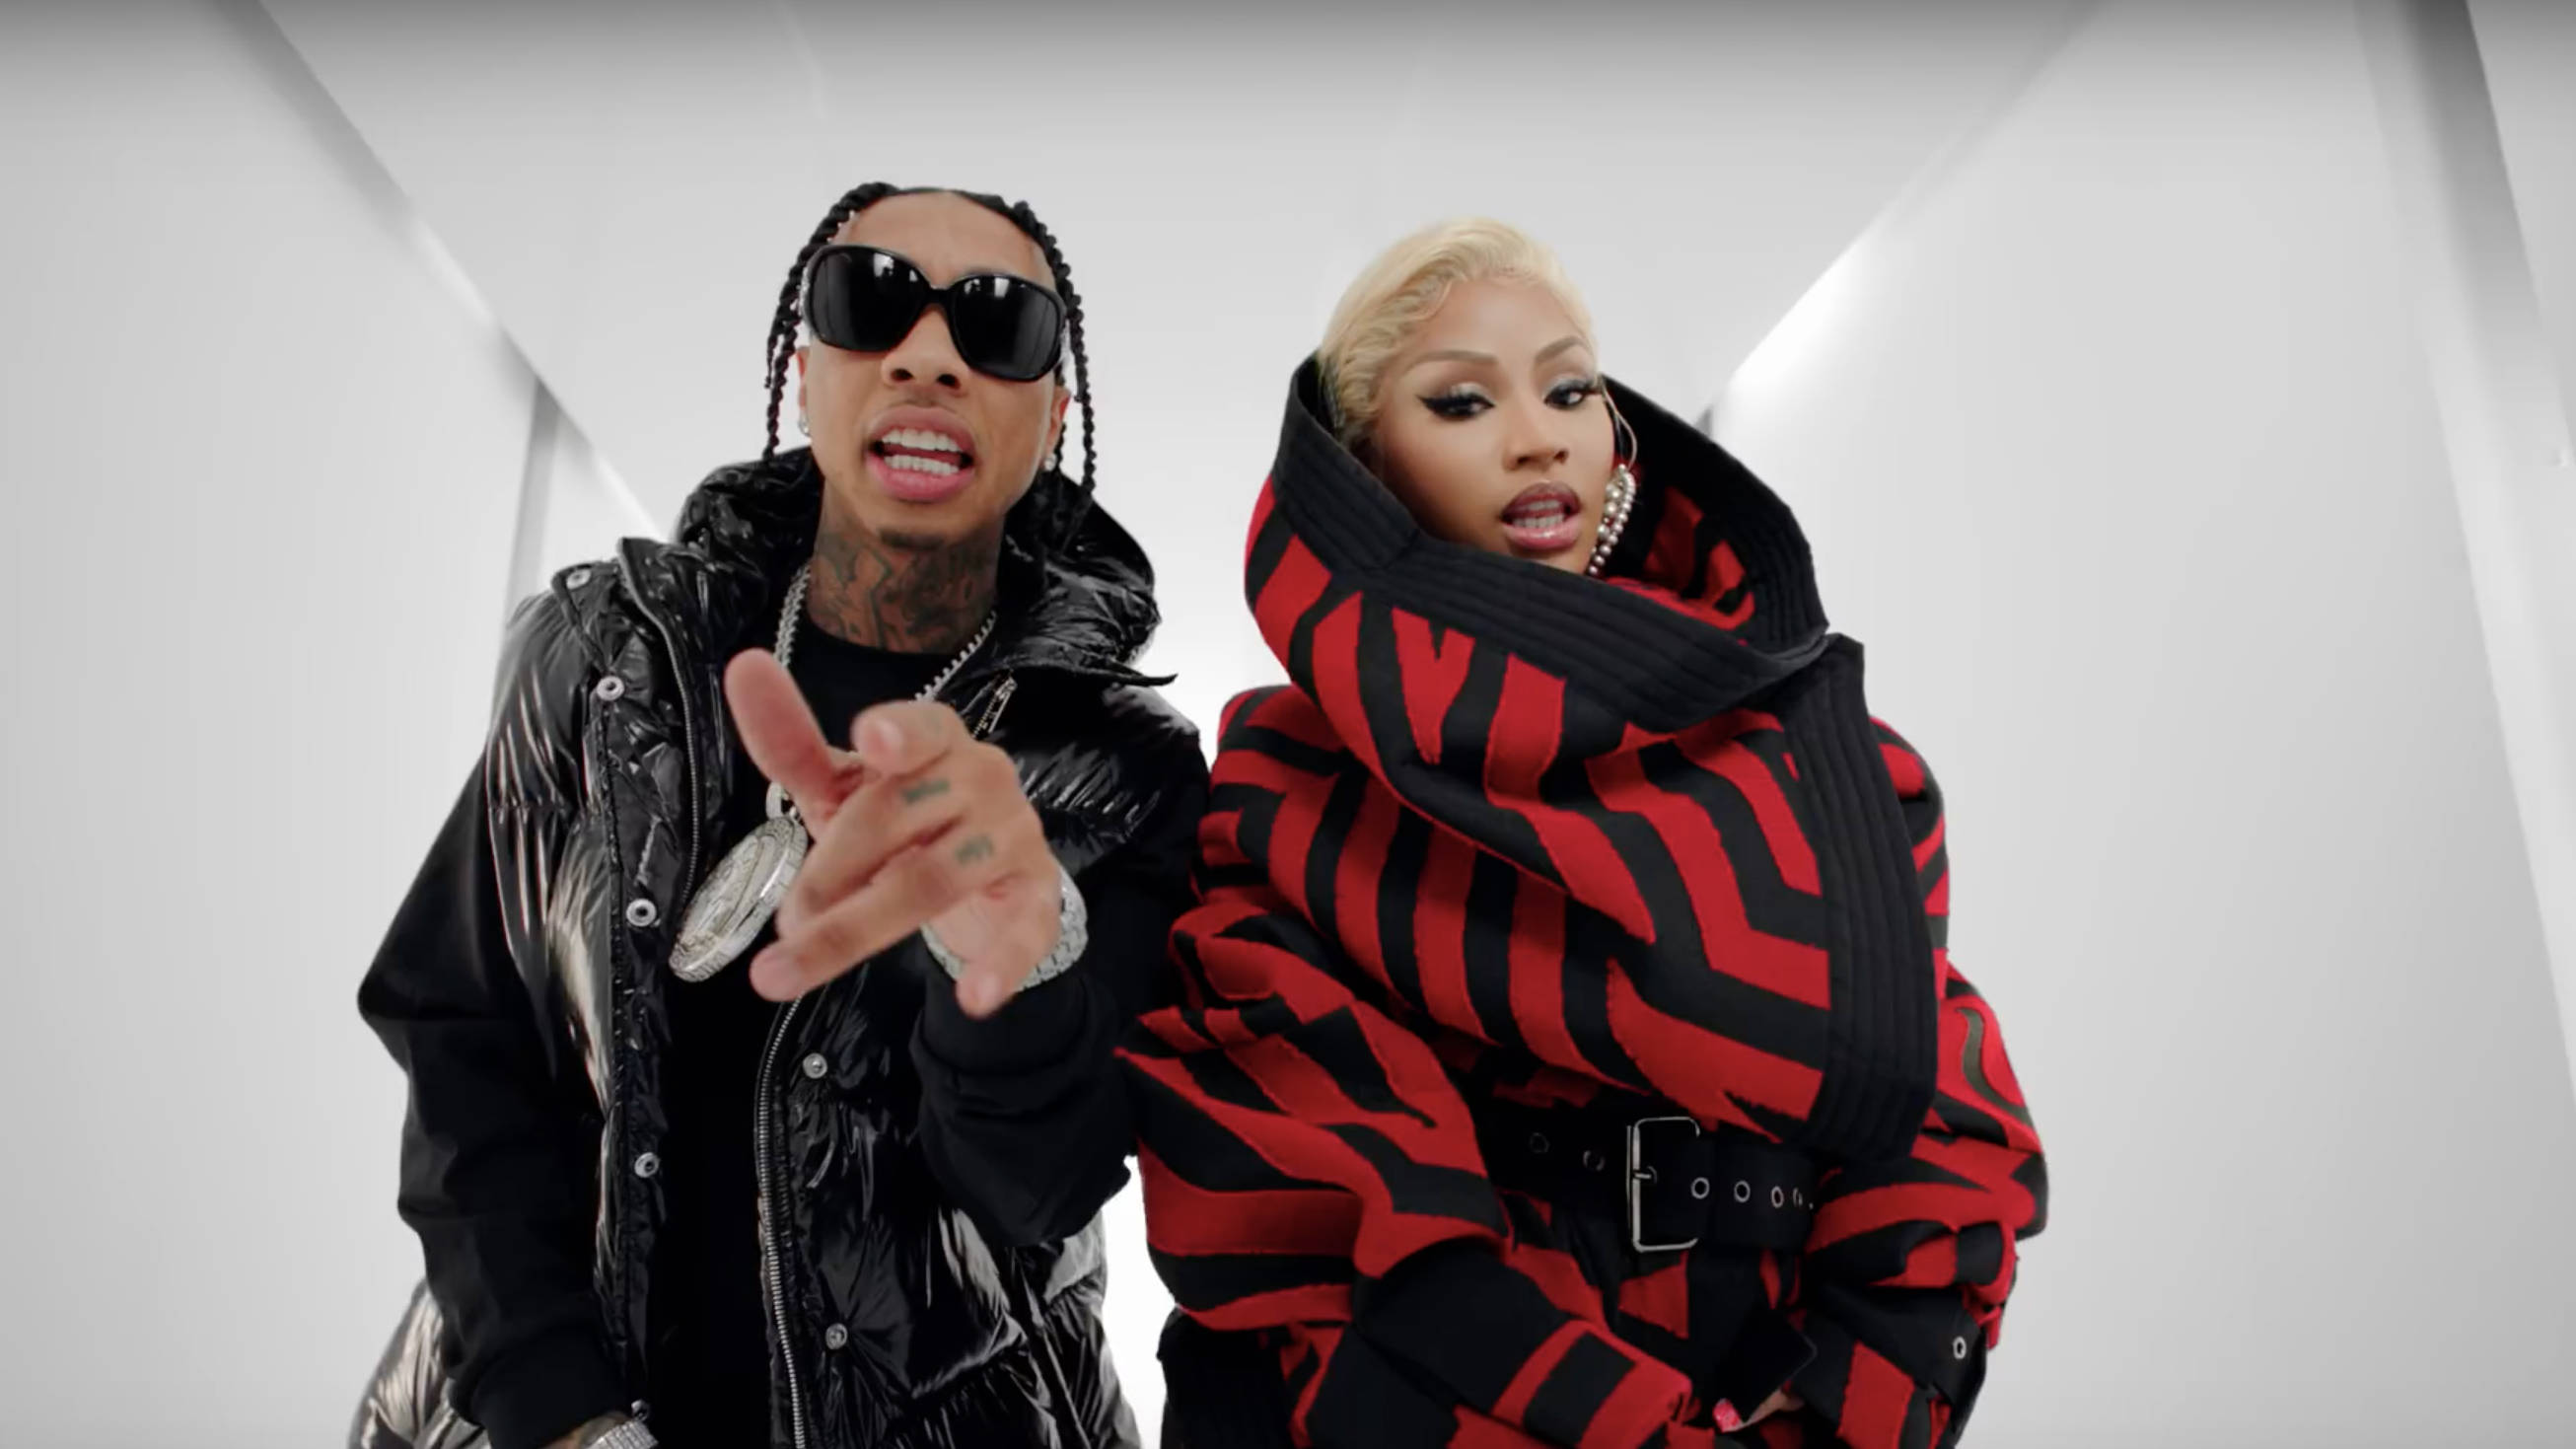 tyga all songs download